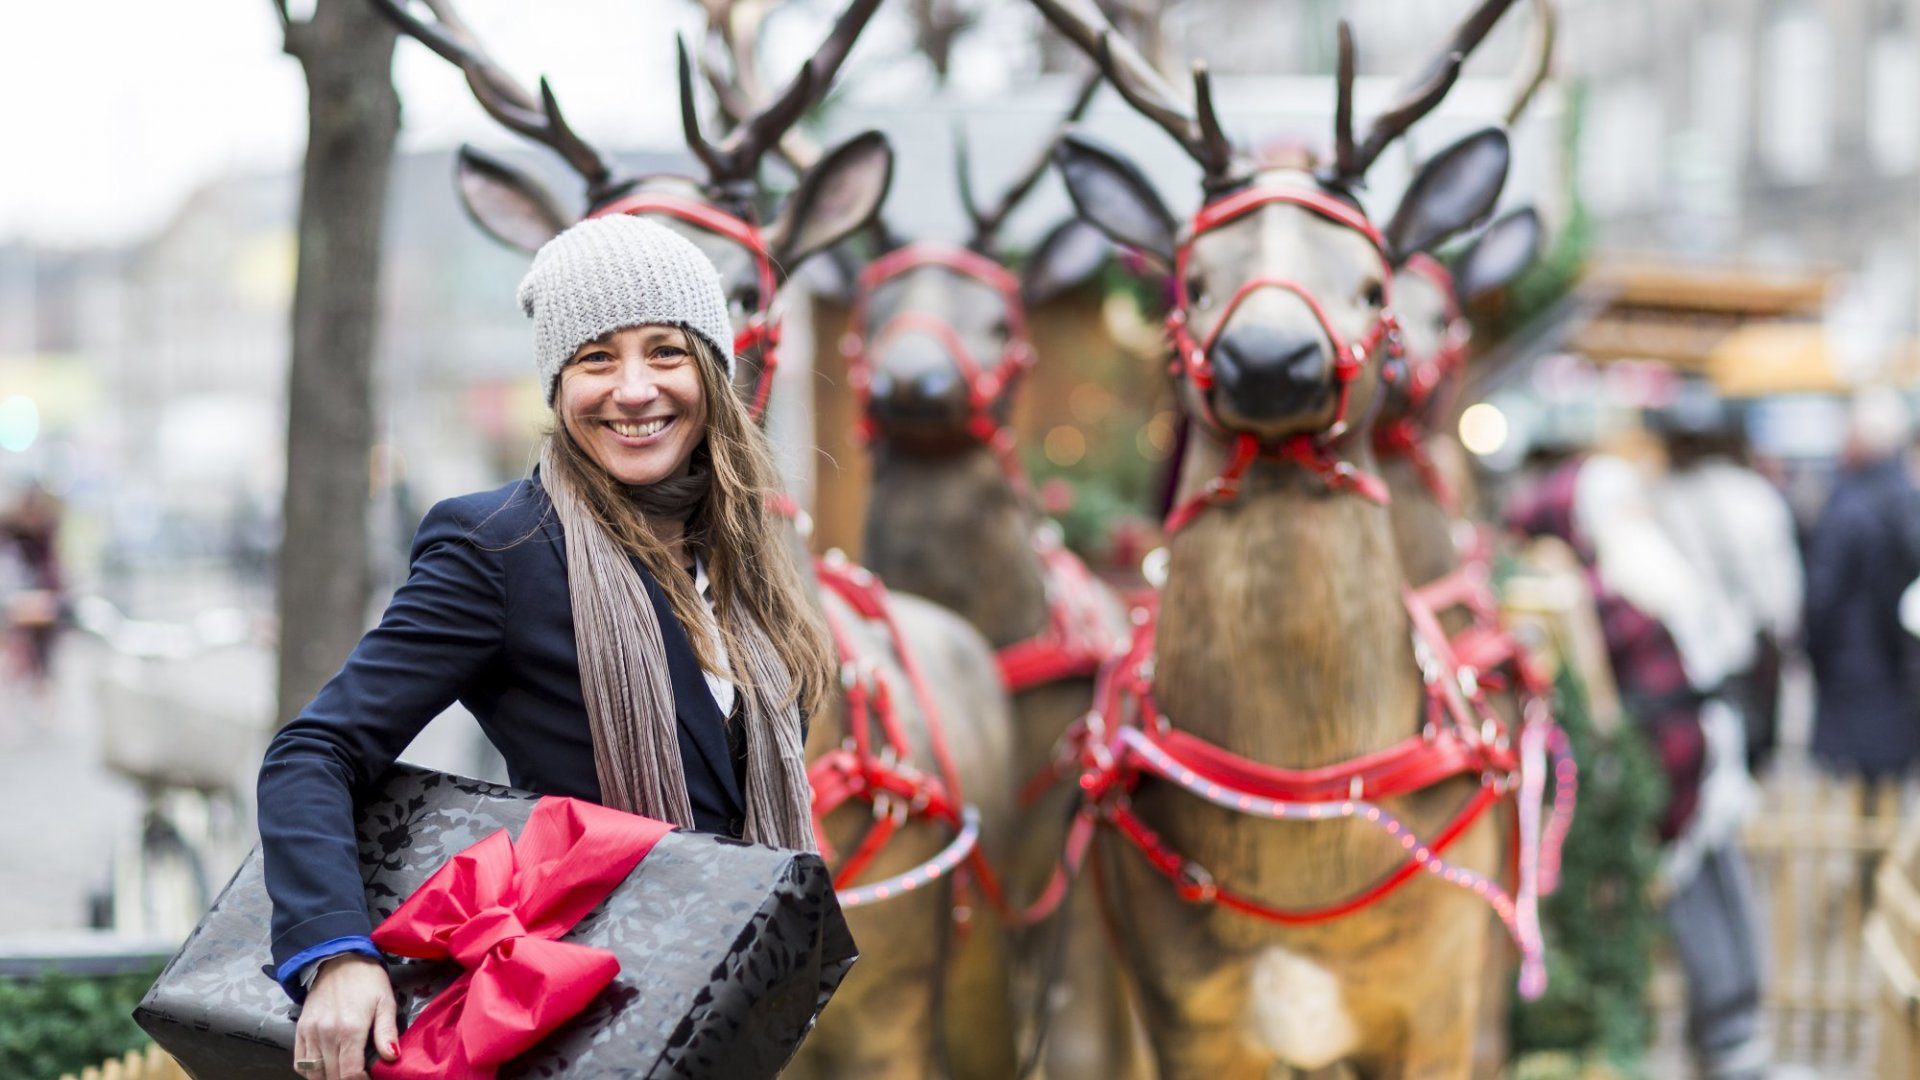 7 Things Successful People Do Over the Holidays